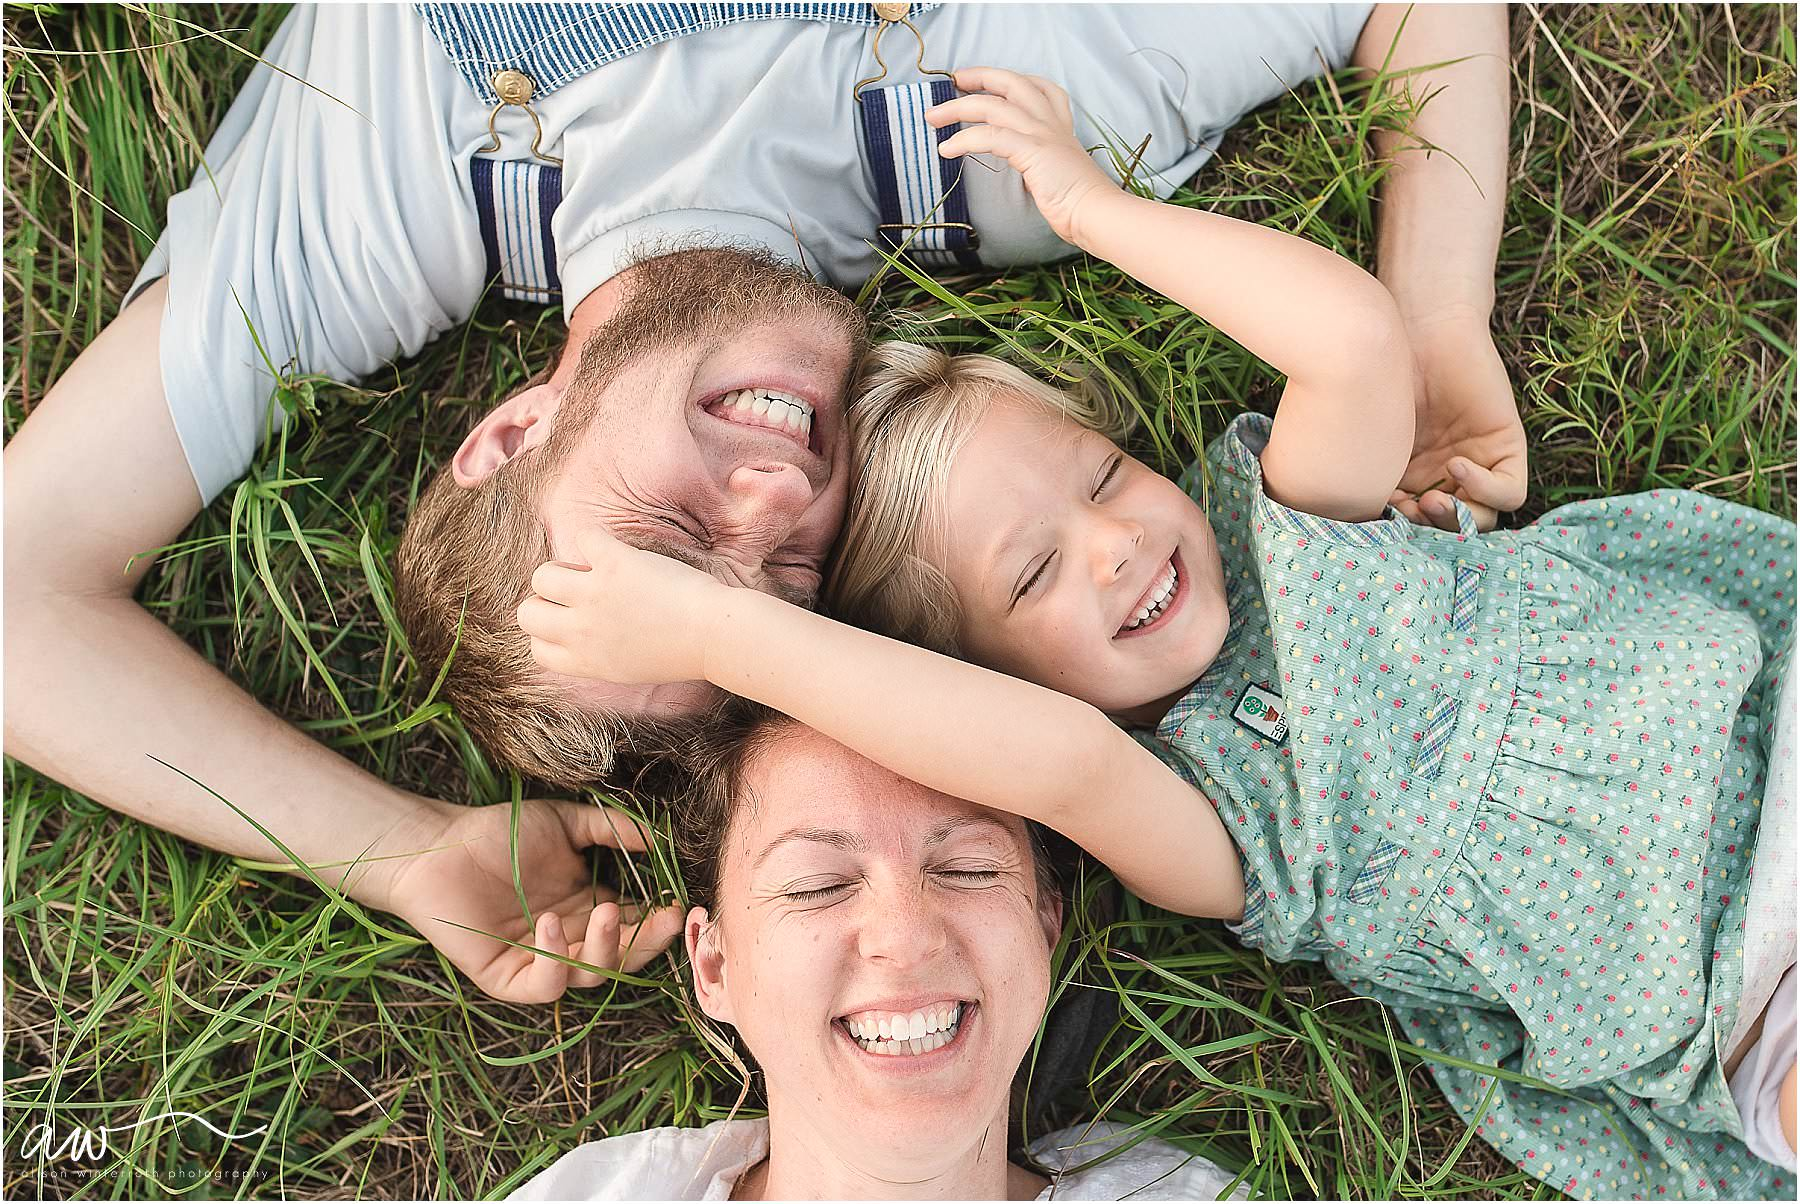 family of three from above laughing